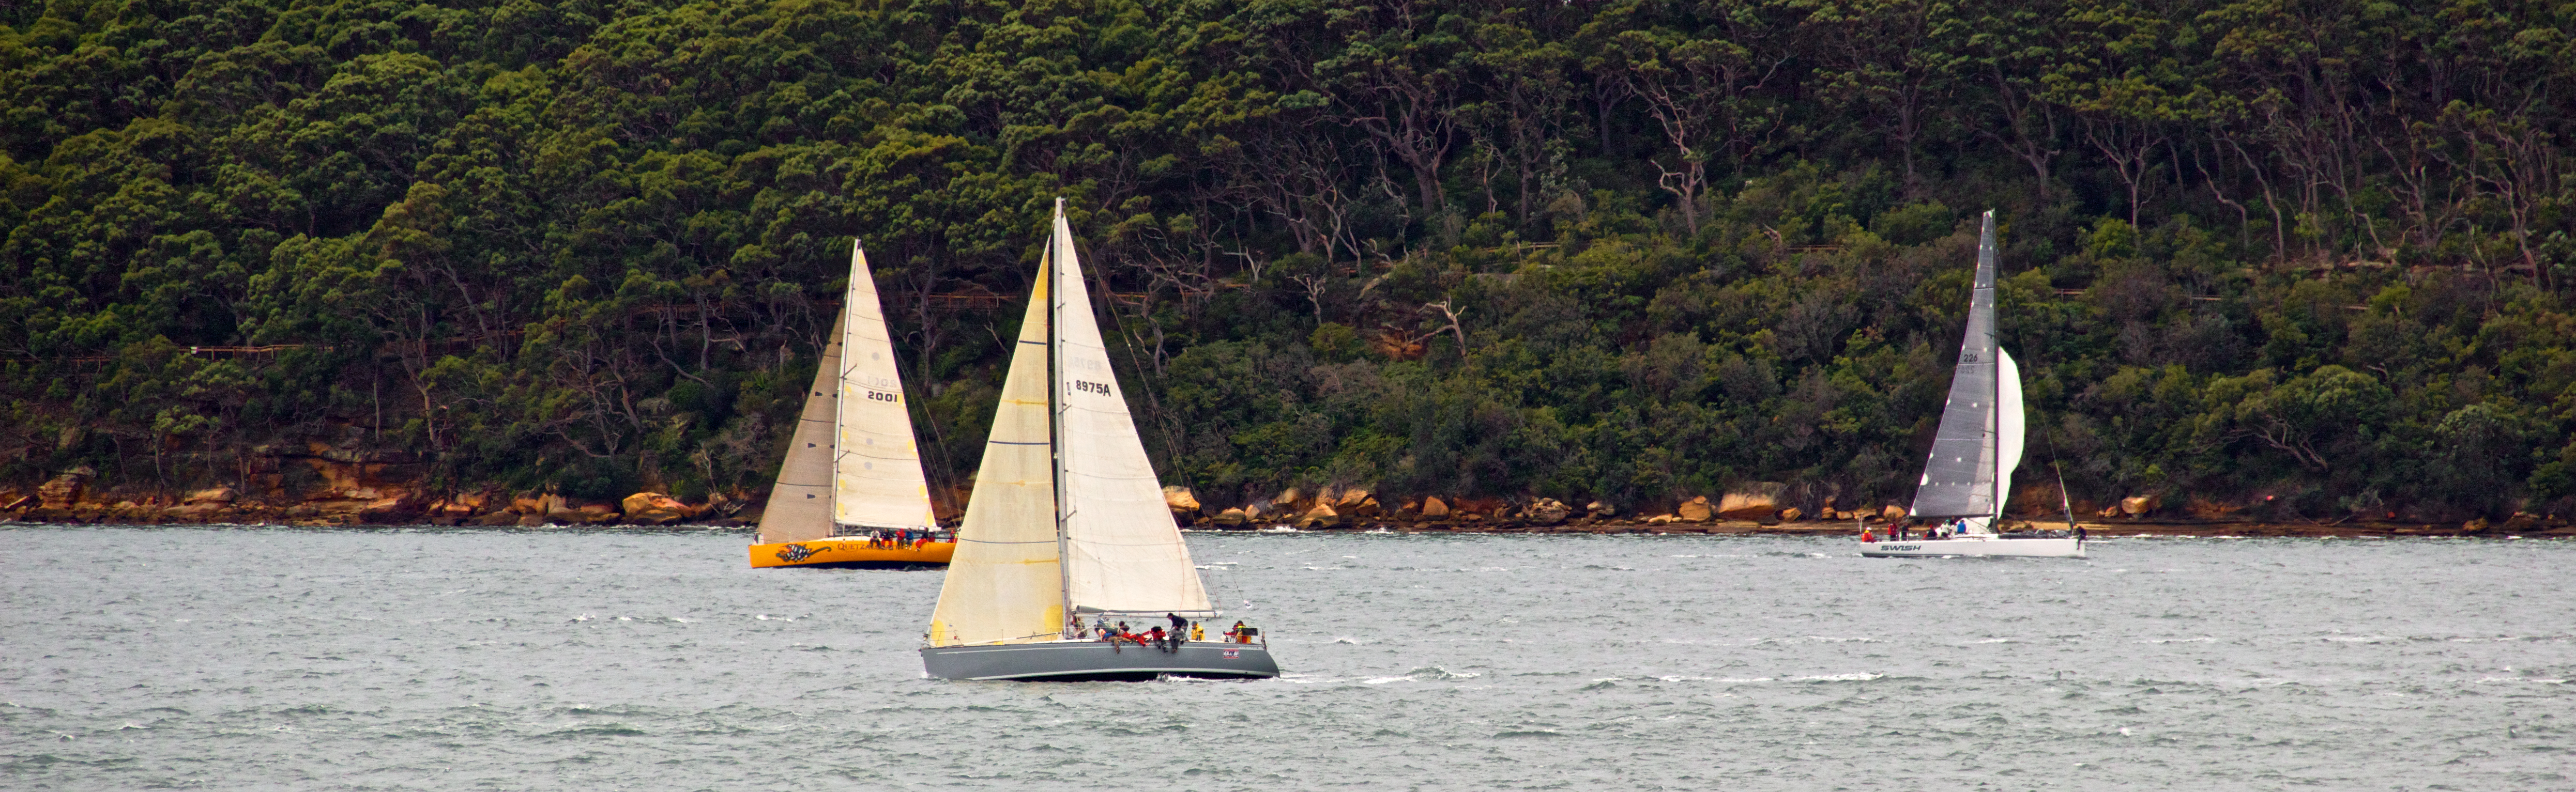 Yachts from garden island photo